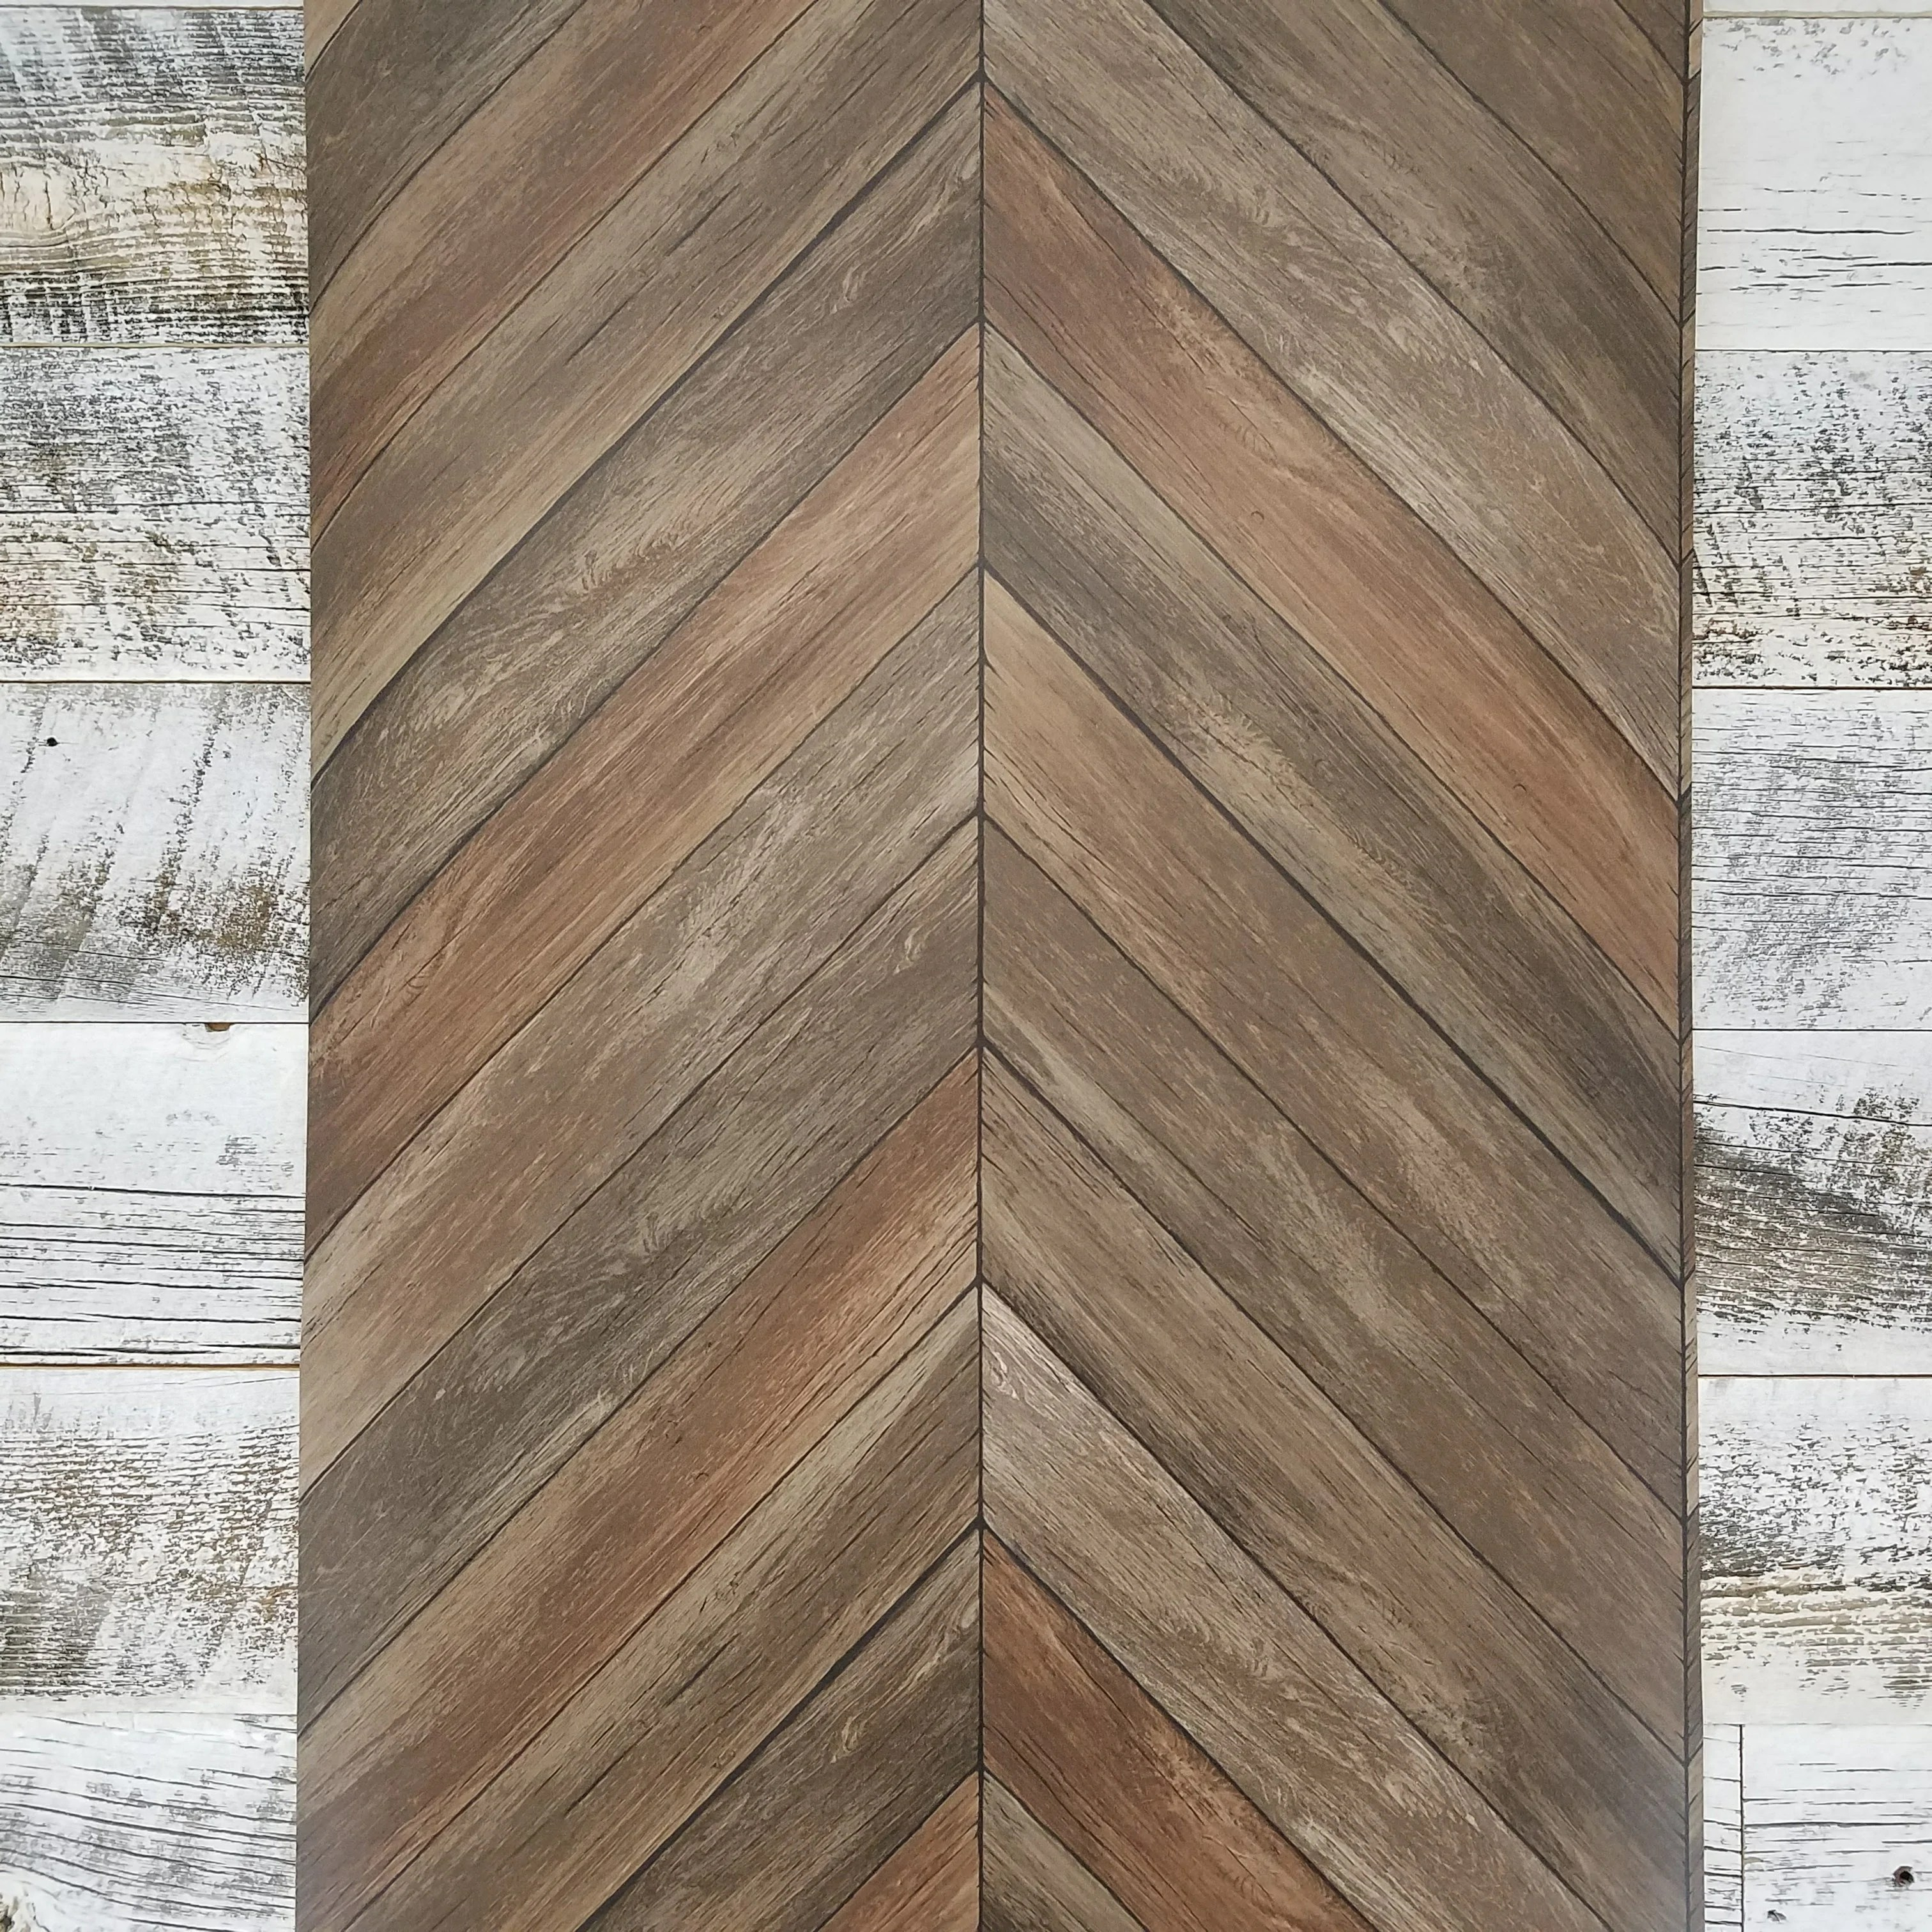 Chevron Wood Plank Parisian Brown Parquet Wallpaper D Marie Interiors